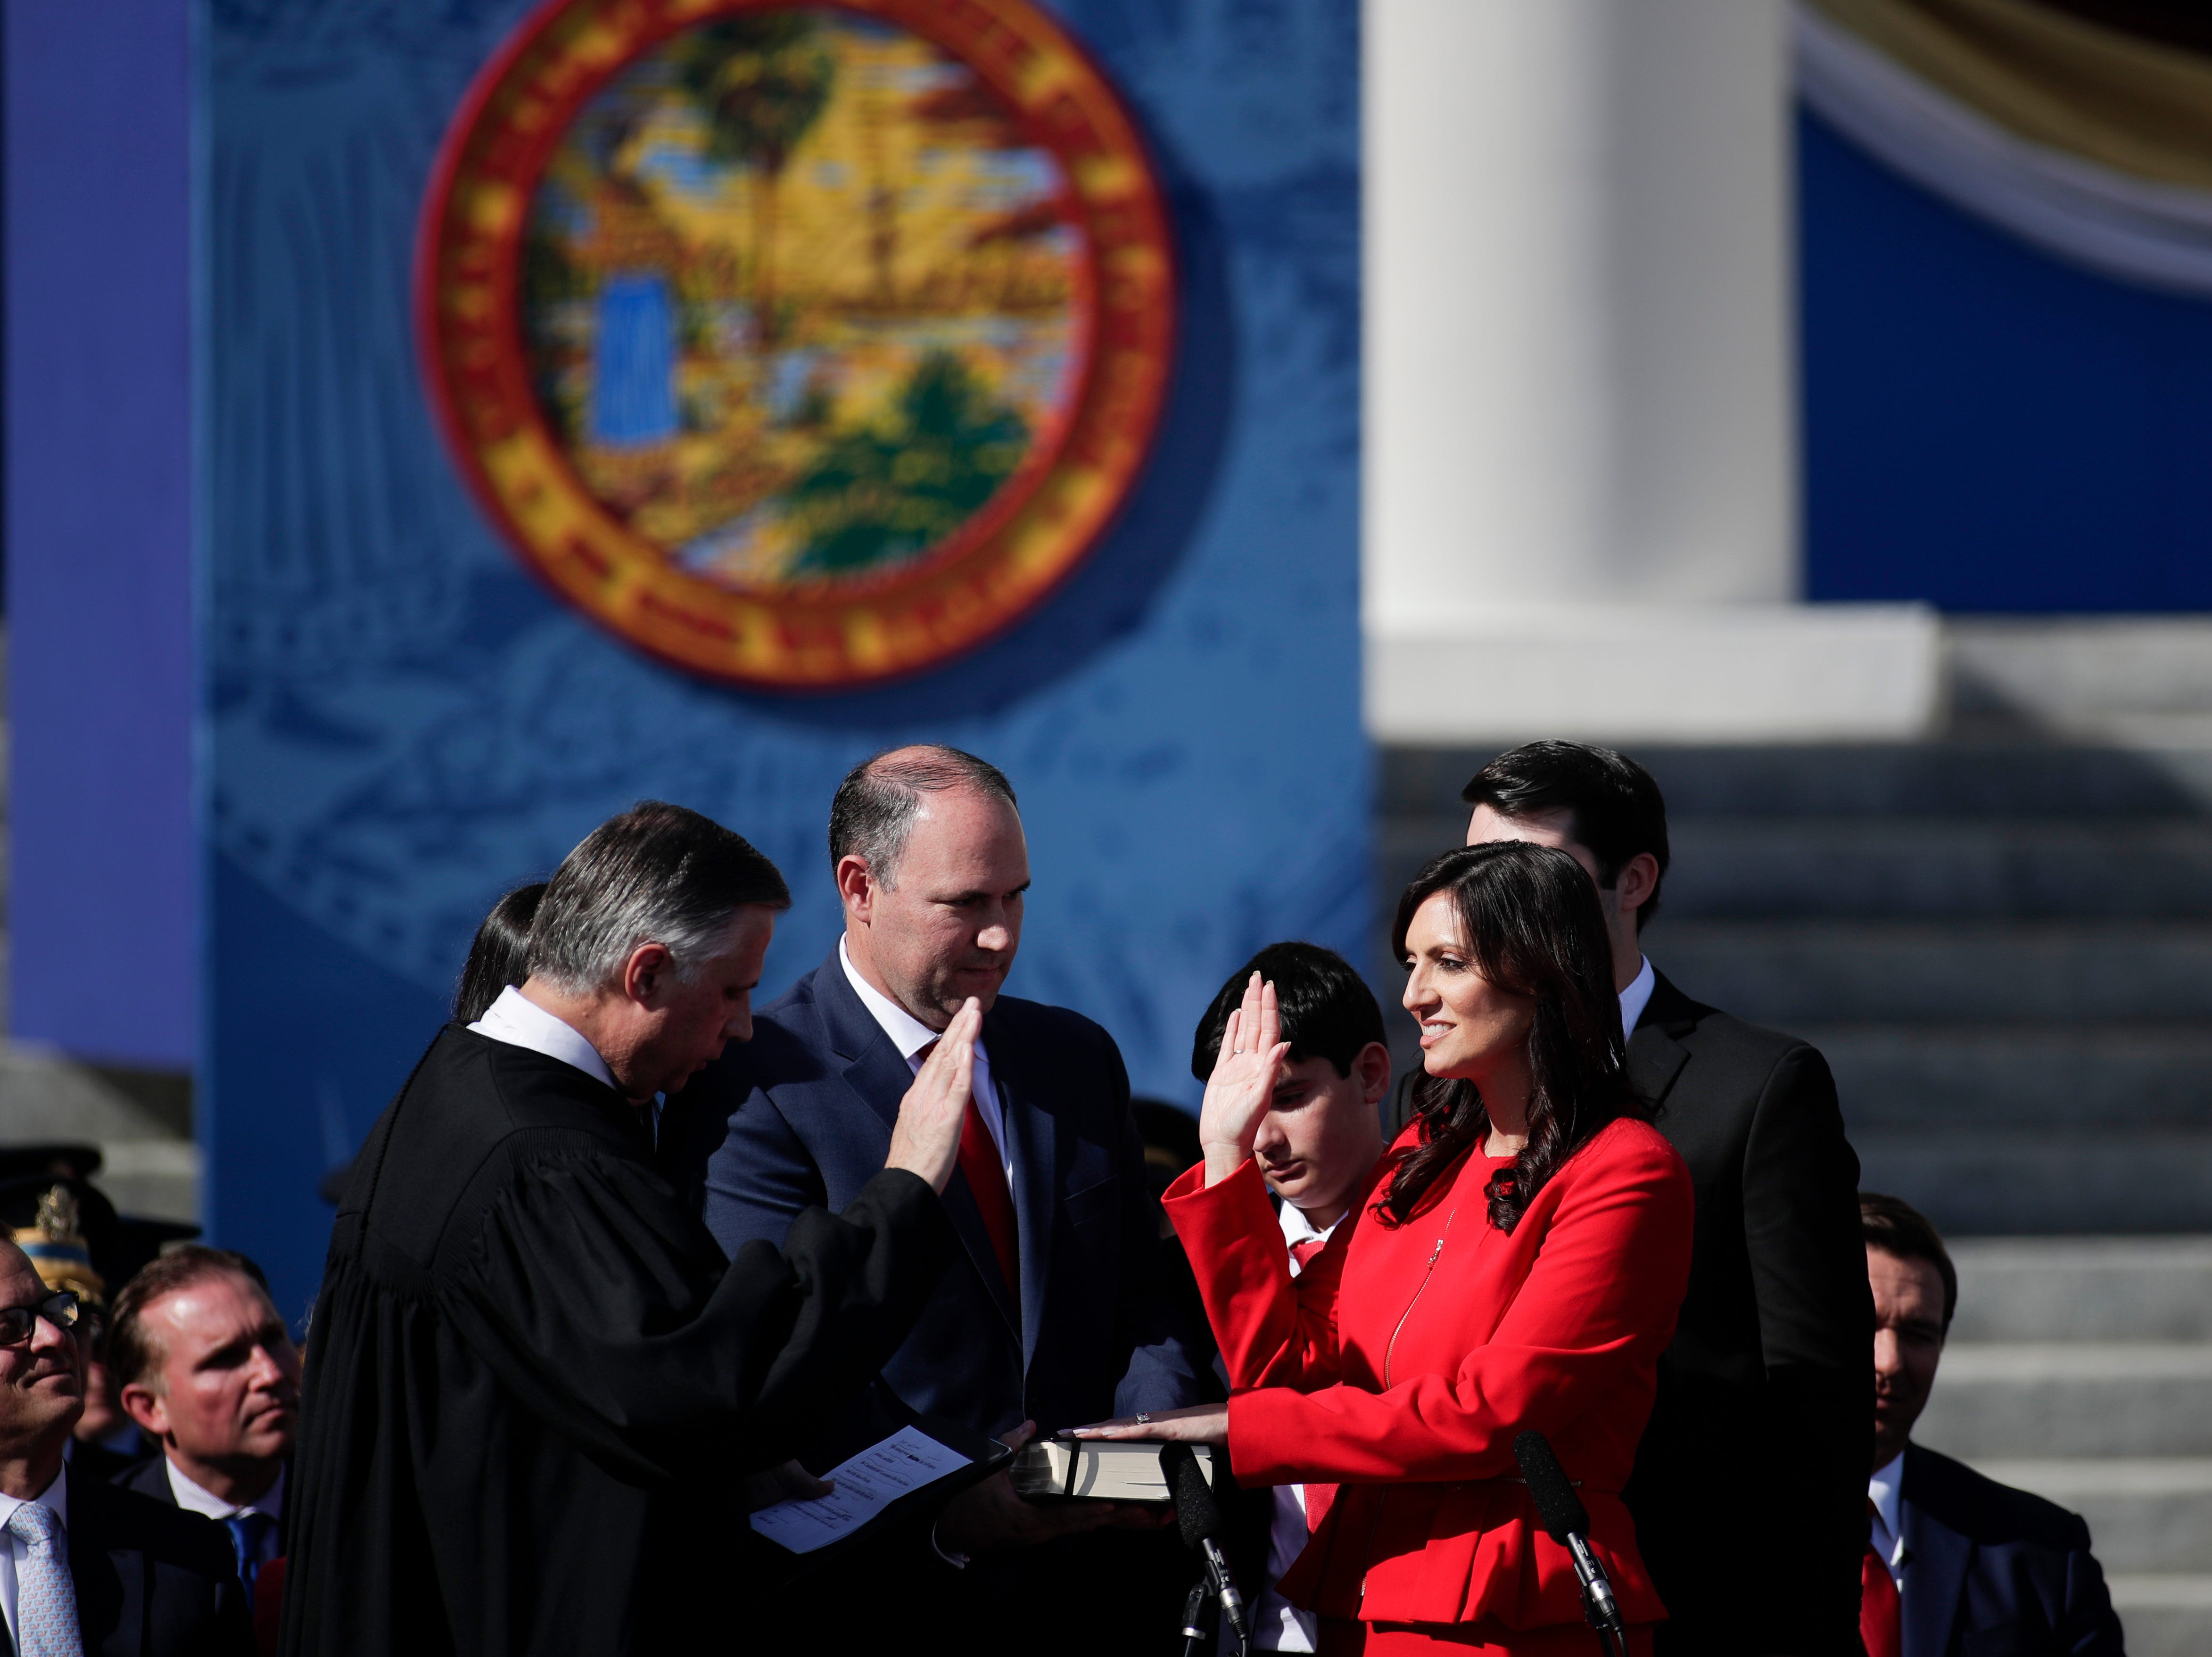 Lt. Gov. Jeanette Nunez takes the oath of office from Judge Larry Metz during the 2019 inauguration ceremony on the steps of the Historic Capitol Building in Tallahassee Tuesday, Jan. 8, 2019.